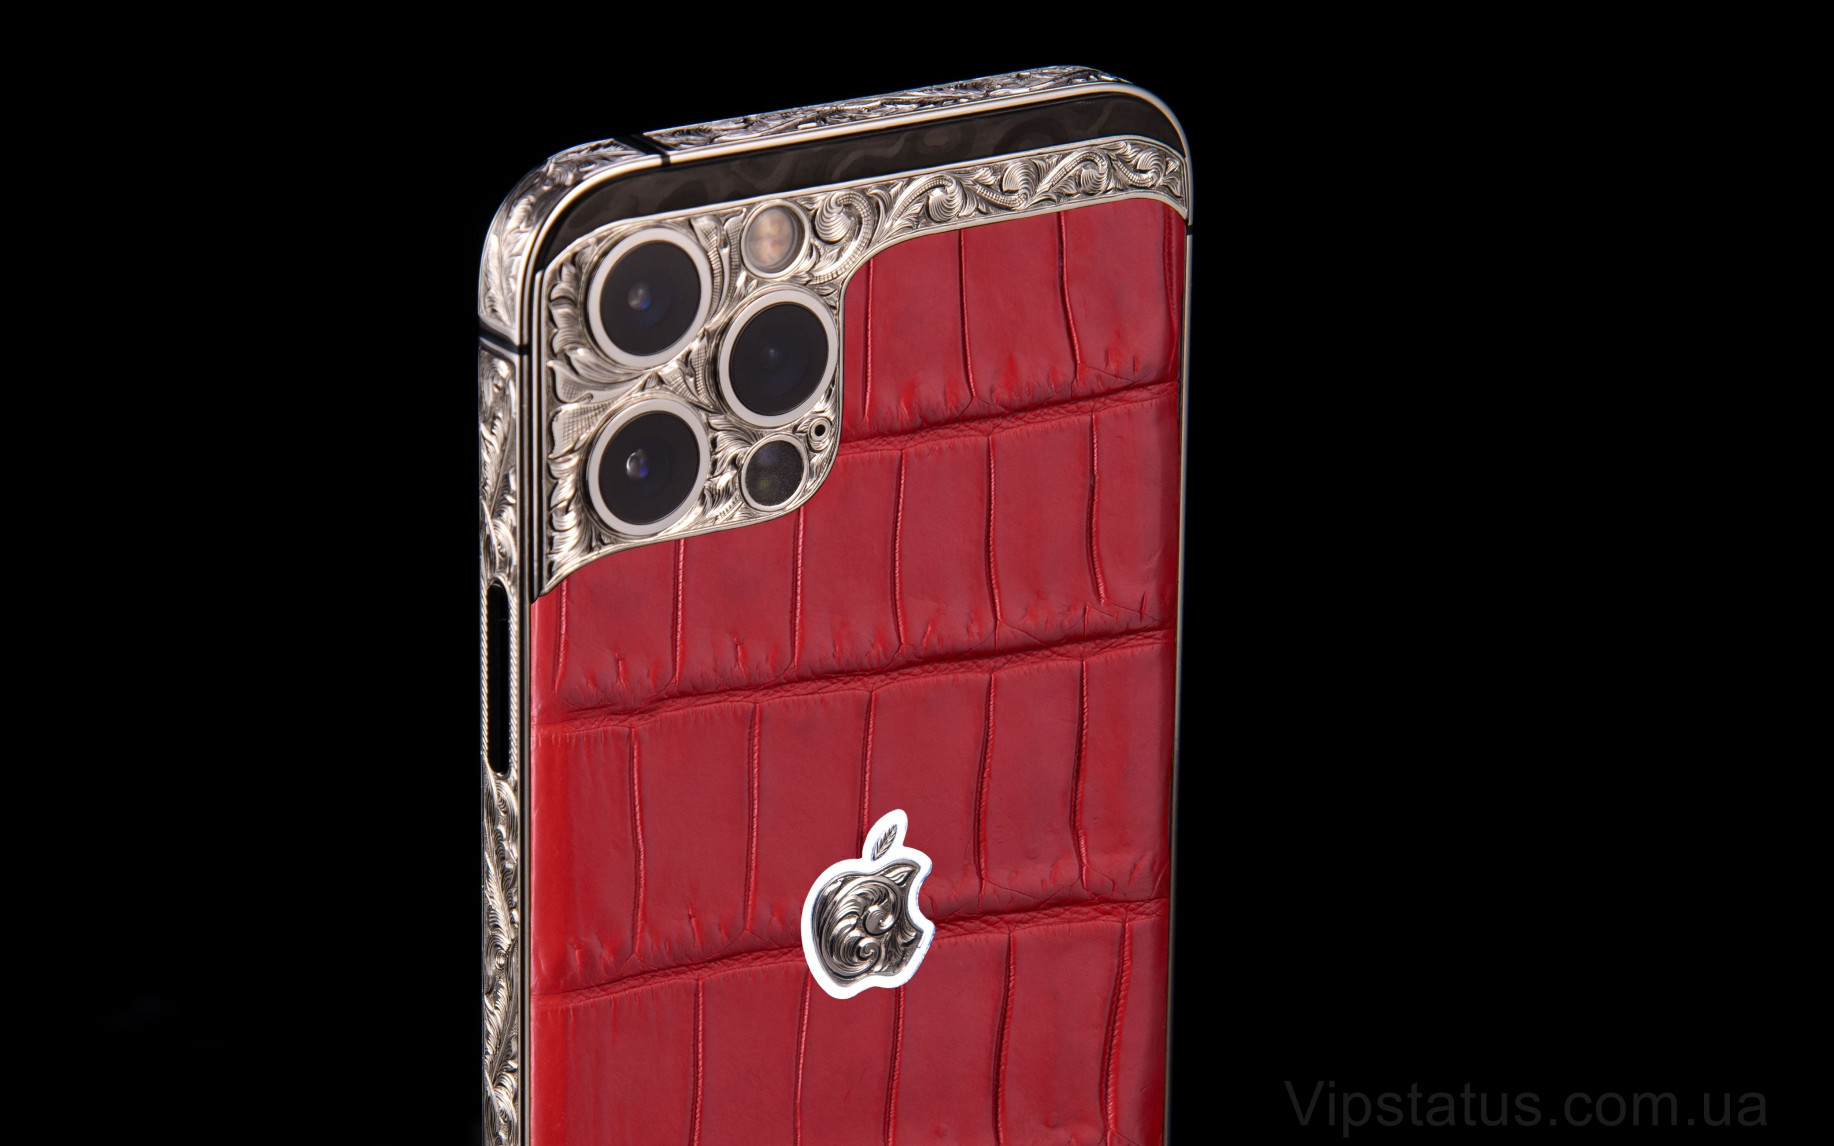 Elite Red Queen Edition IPHONE 12 PRO MAX 512 GB Red Queen Edition IPHONE 12 PRO MAX 512 GB image 6